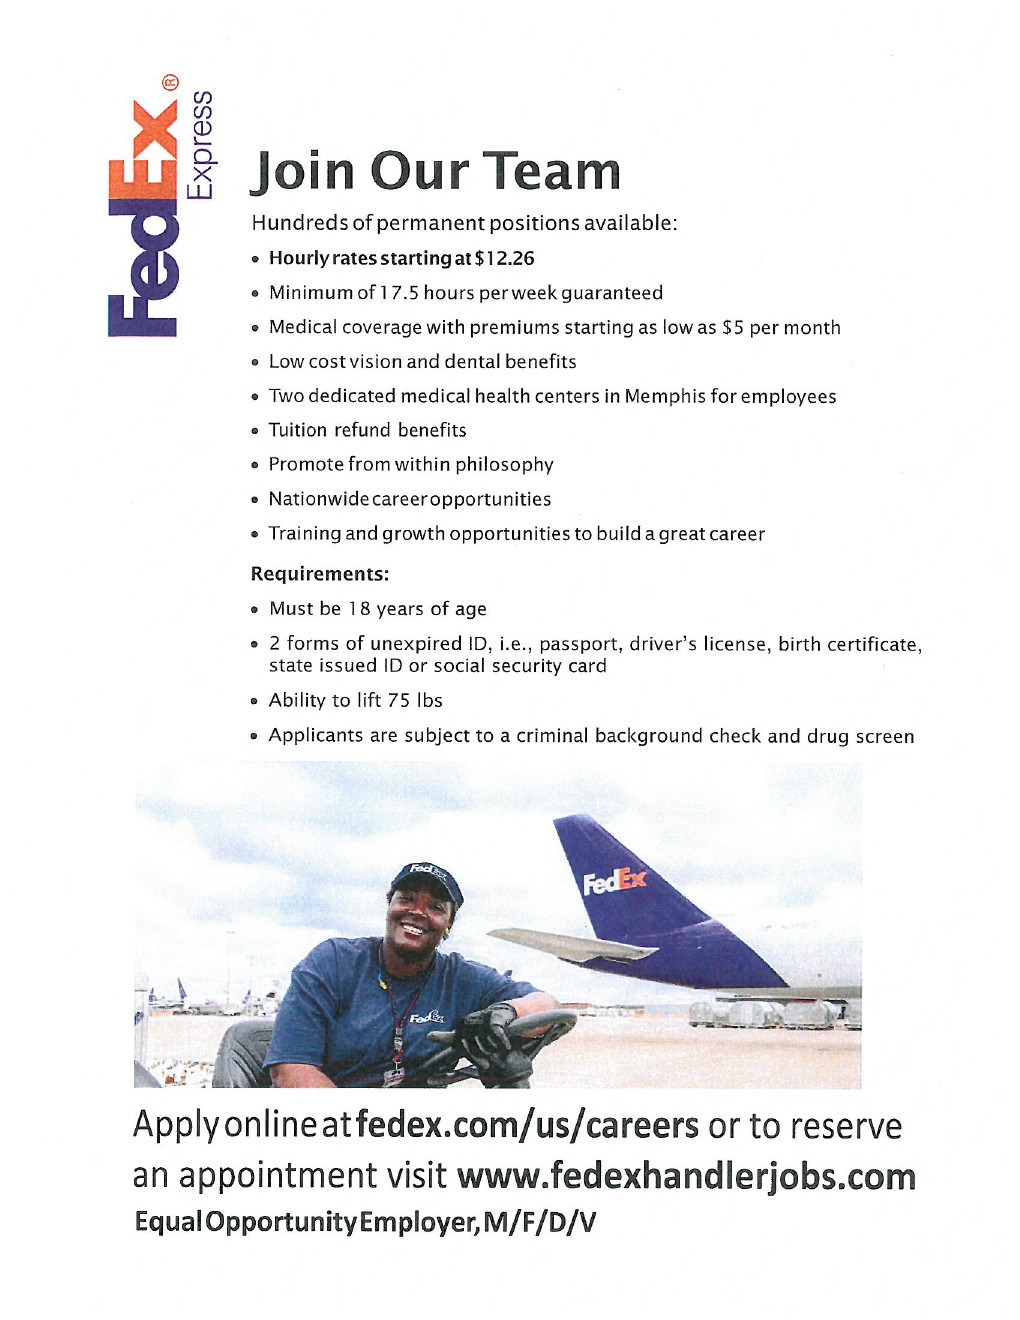 how to get a job at fedex express